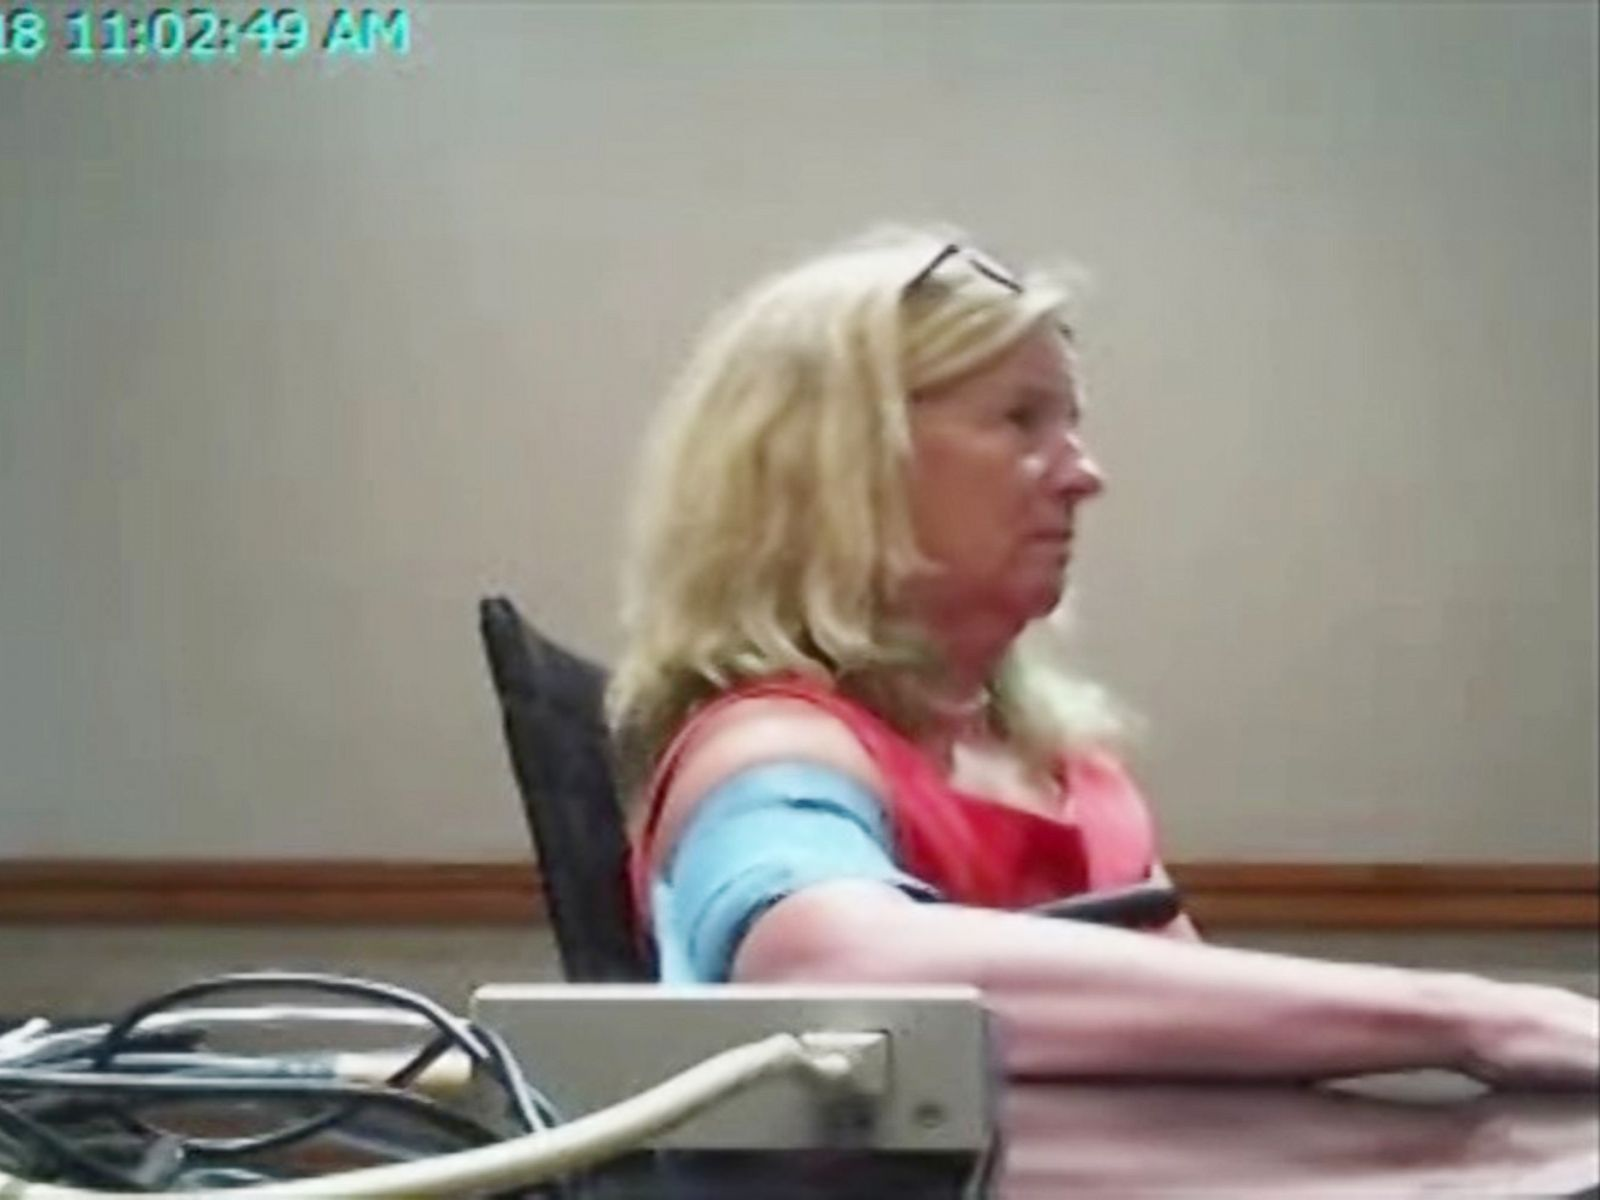 Ford legal team releases polygraph test results, Thursday